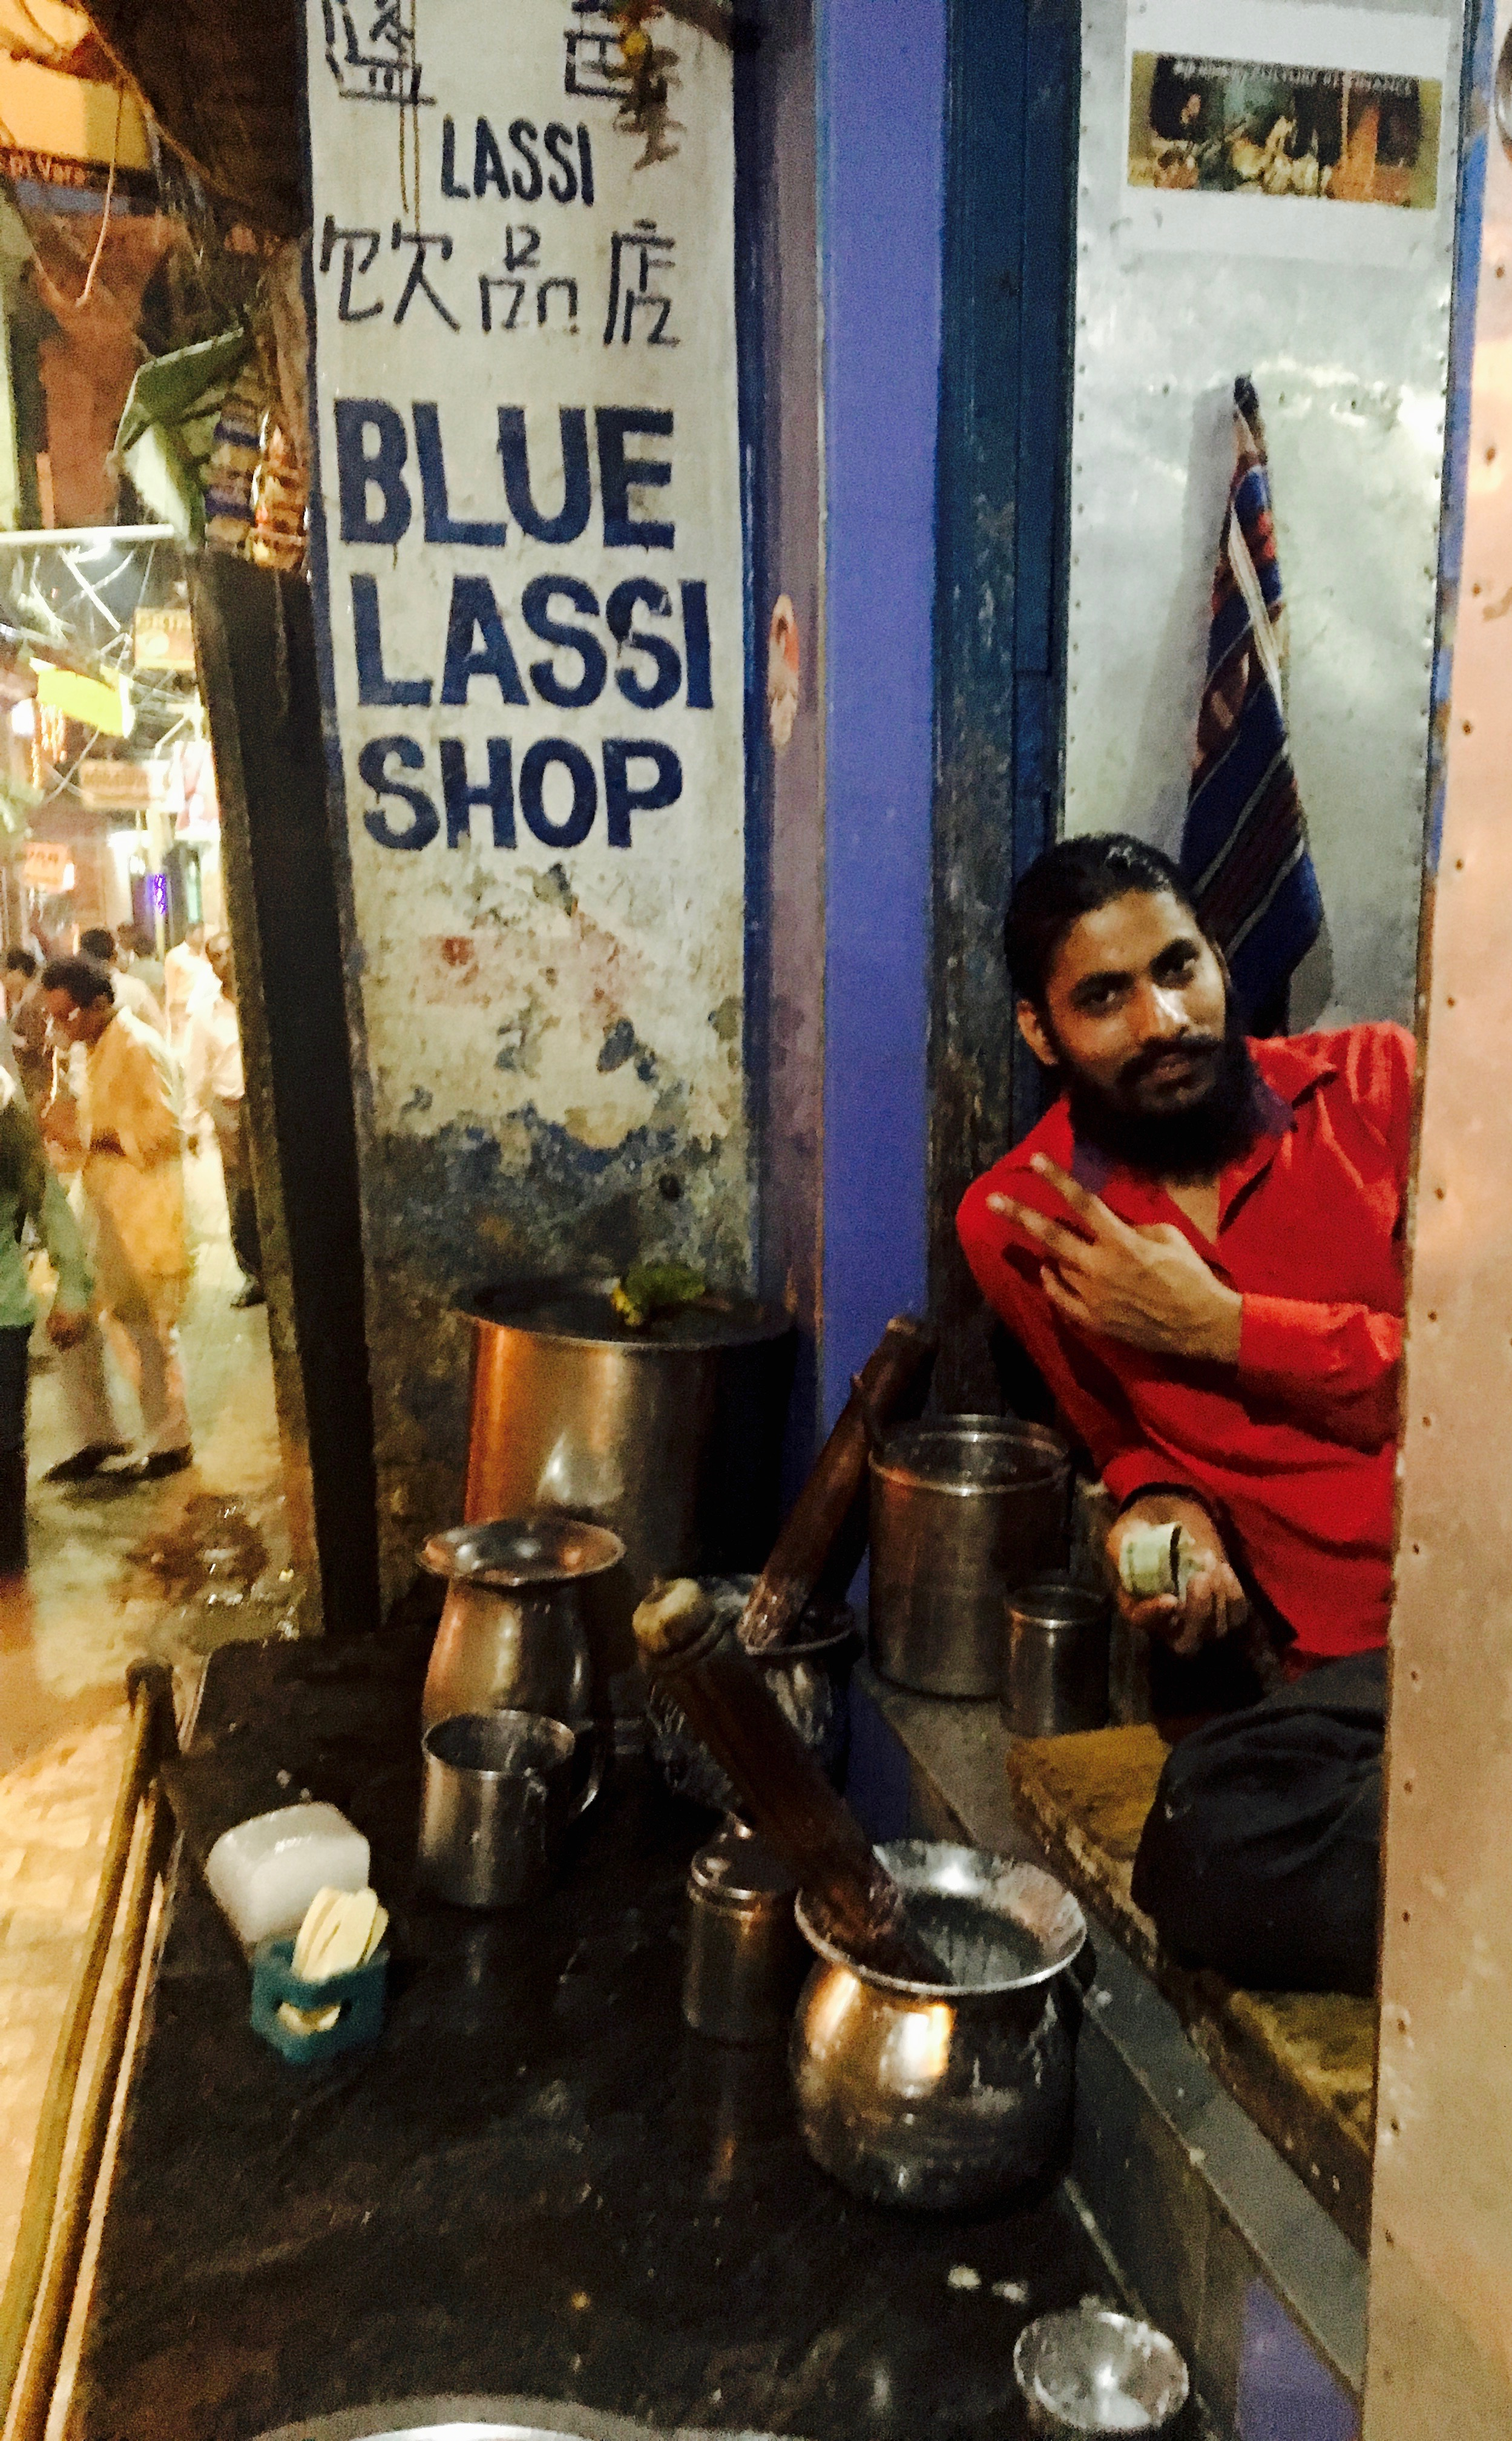 The lassi chef in the flesh and his simple lassi setup.